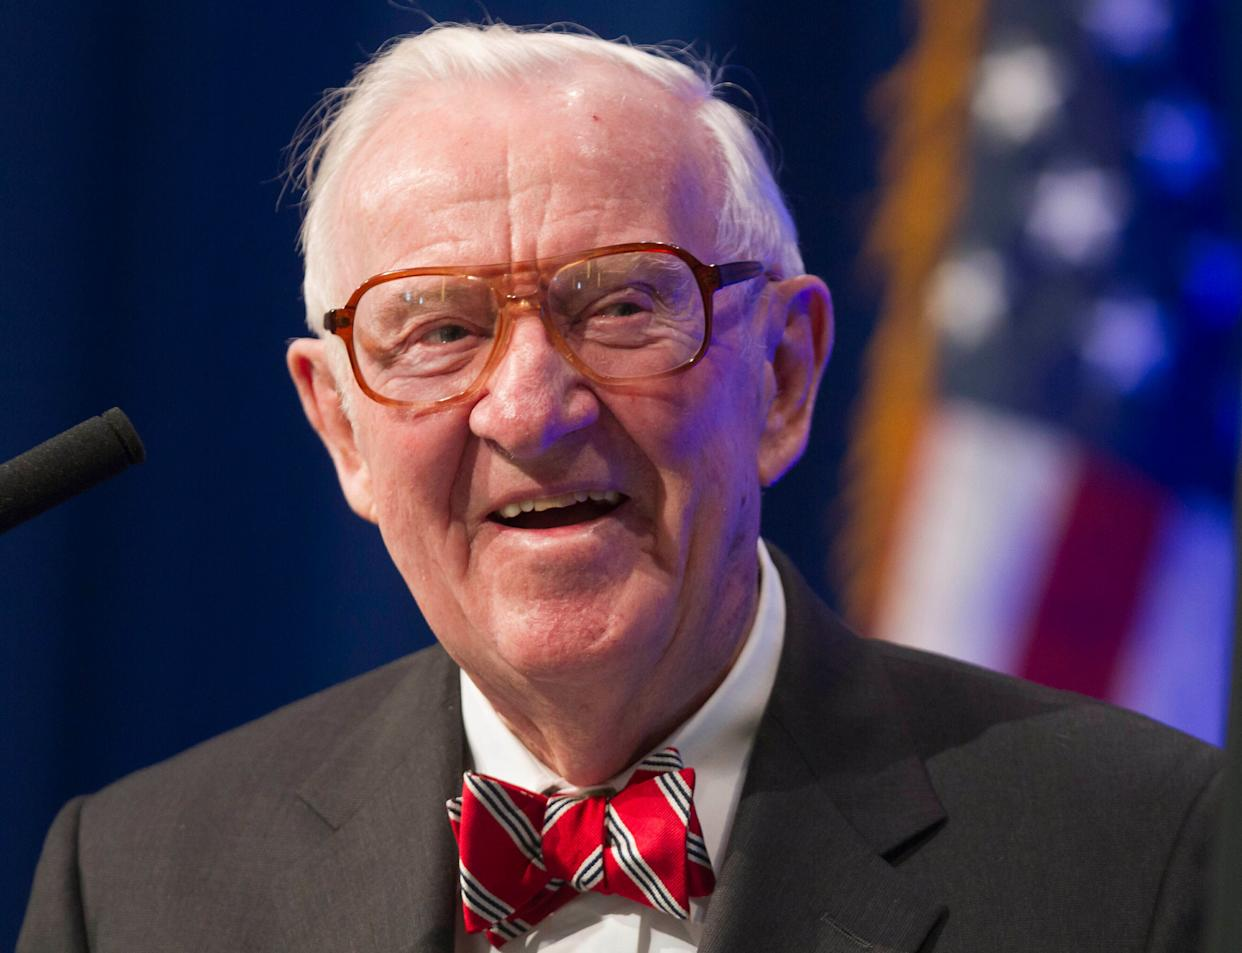 John Paul Stevens, a moderate Republican and former antitrust lawyer from Chicago who evolved into a savvy and sometimes passionate leader of the Supreme Court's liberal wing and became the third- longest-serving justice on the court before he retired in 2010, died on July 16, 2019. He was 99.